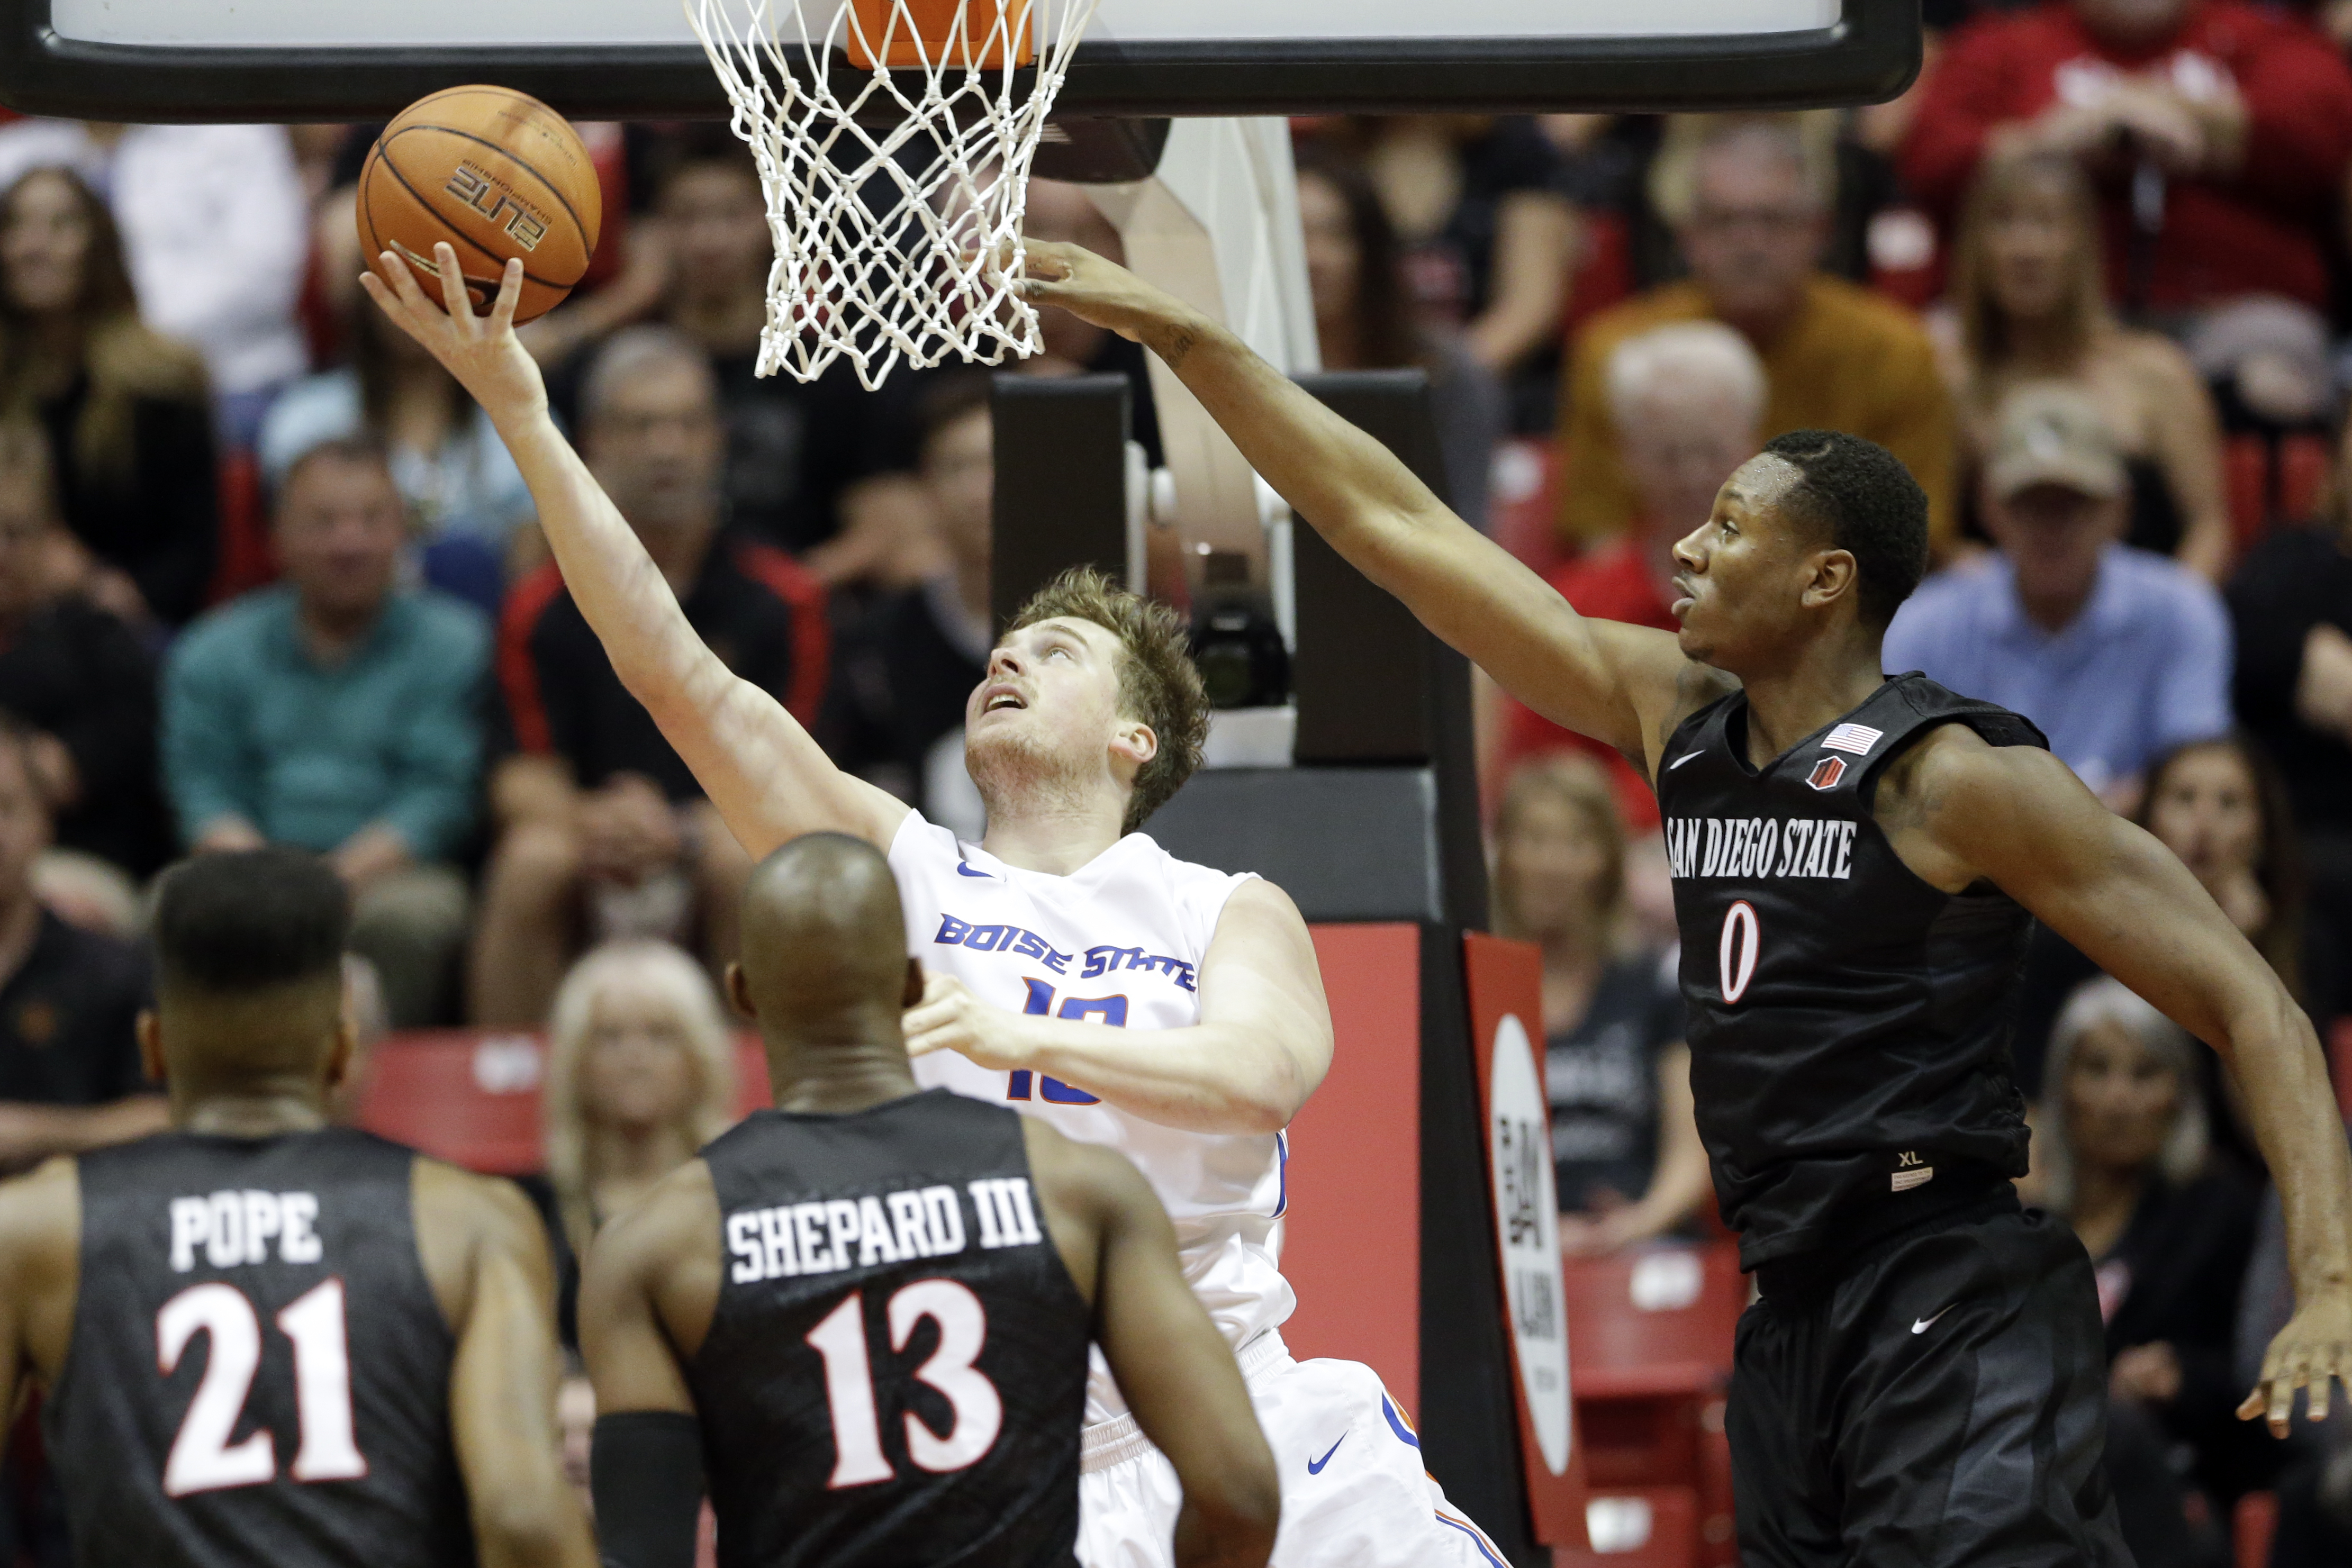 Boise State forward Nick Duncan, center, shoots past San Diego State forward Skylar Spencer (0) during the first half of an NCAA college basketball game Saturday, Feb. 27, 2016, in San Diego. (AP Photo/Gregory Bull)